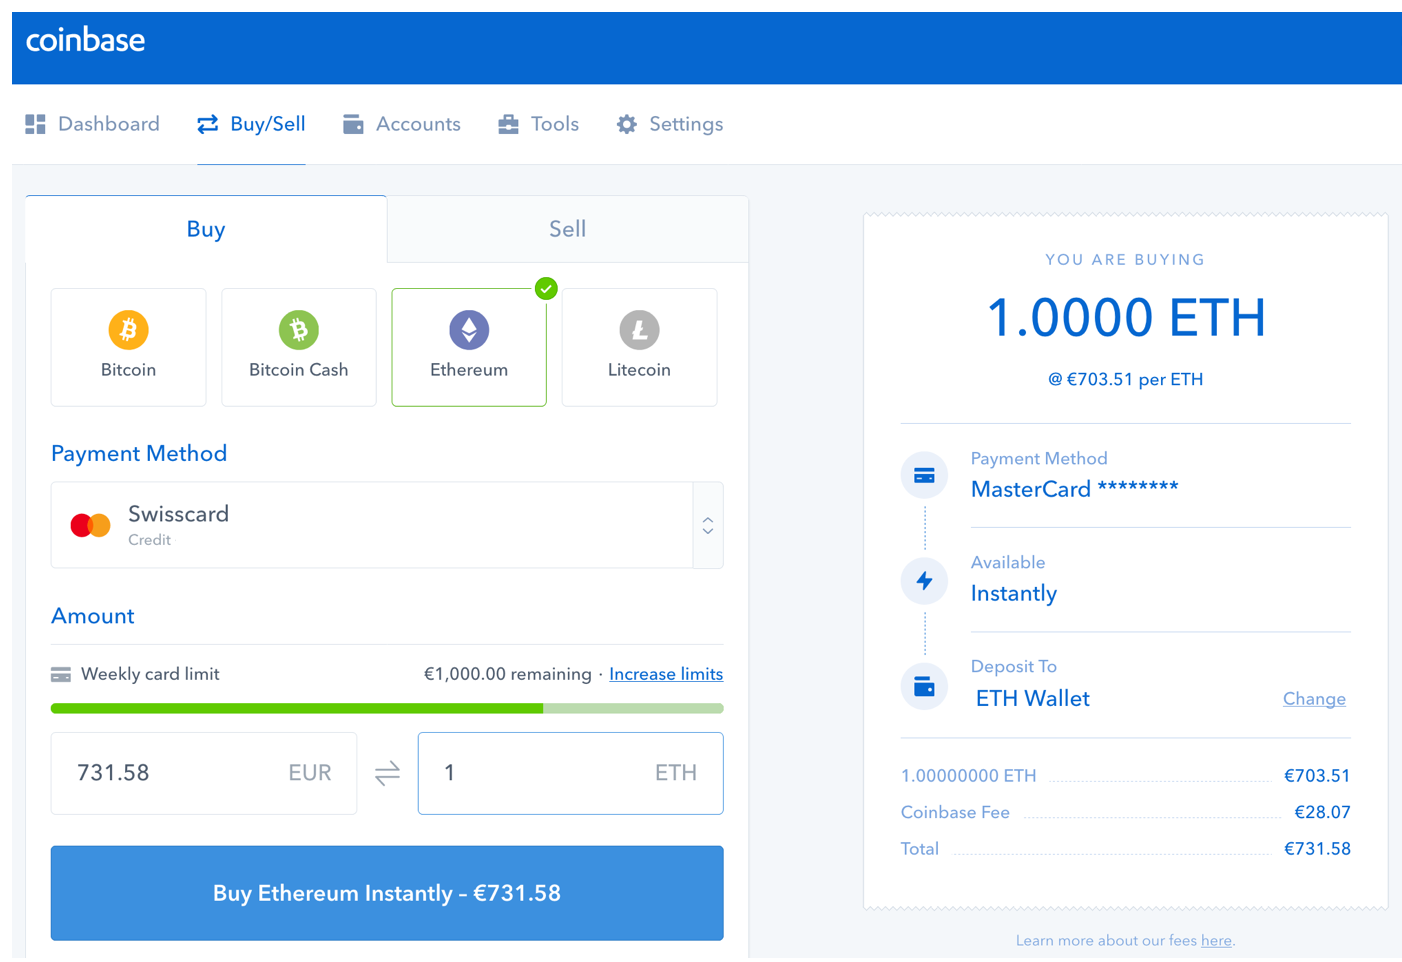 Screenshot of the Coinbase User Interface